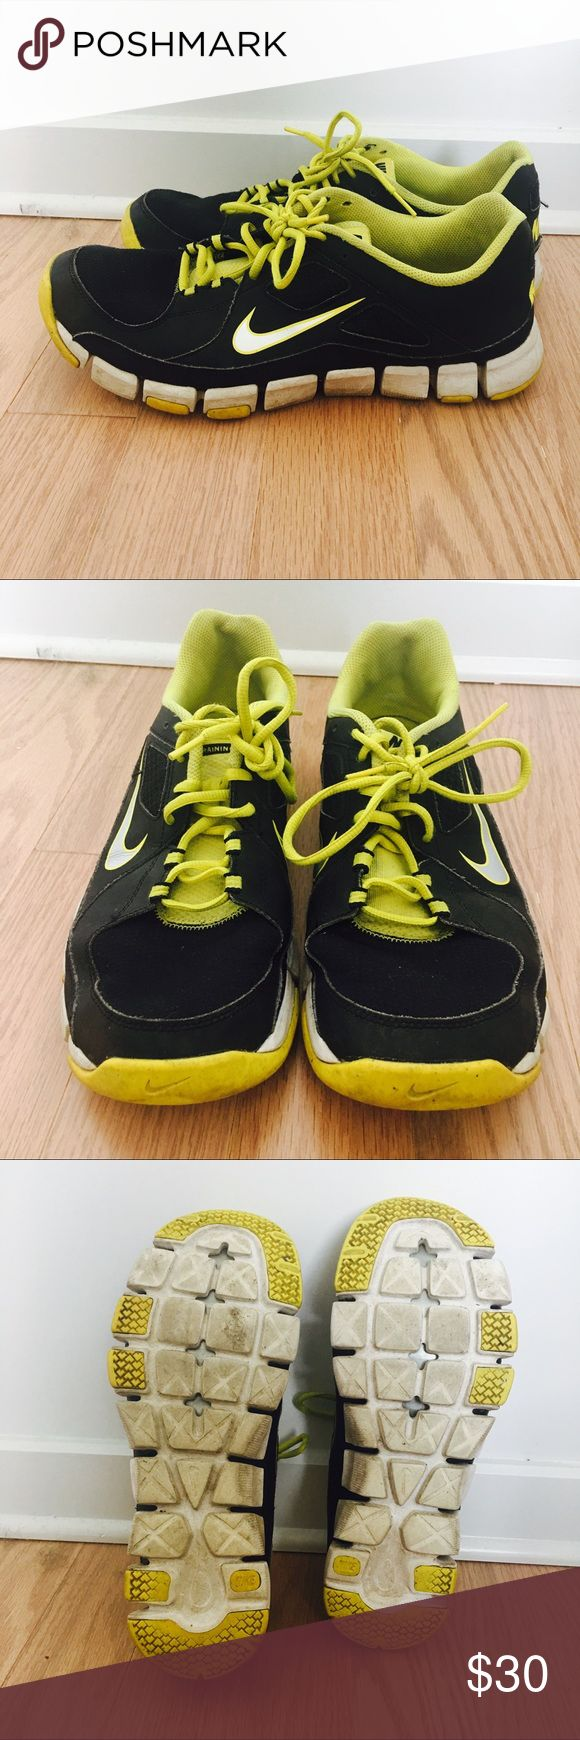 Nike Yellow and Gray training shoes Nike Yellow and Gray Training Shoes in used condition, still very comfortable and look nice! Just some scuffing/discolored patches on the soles of the shoes and along the outer white base of the shoe as a result of being loved Nike Shoes Athletic Shoes